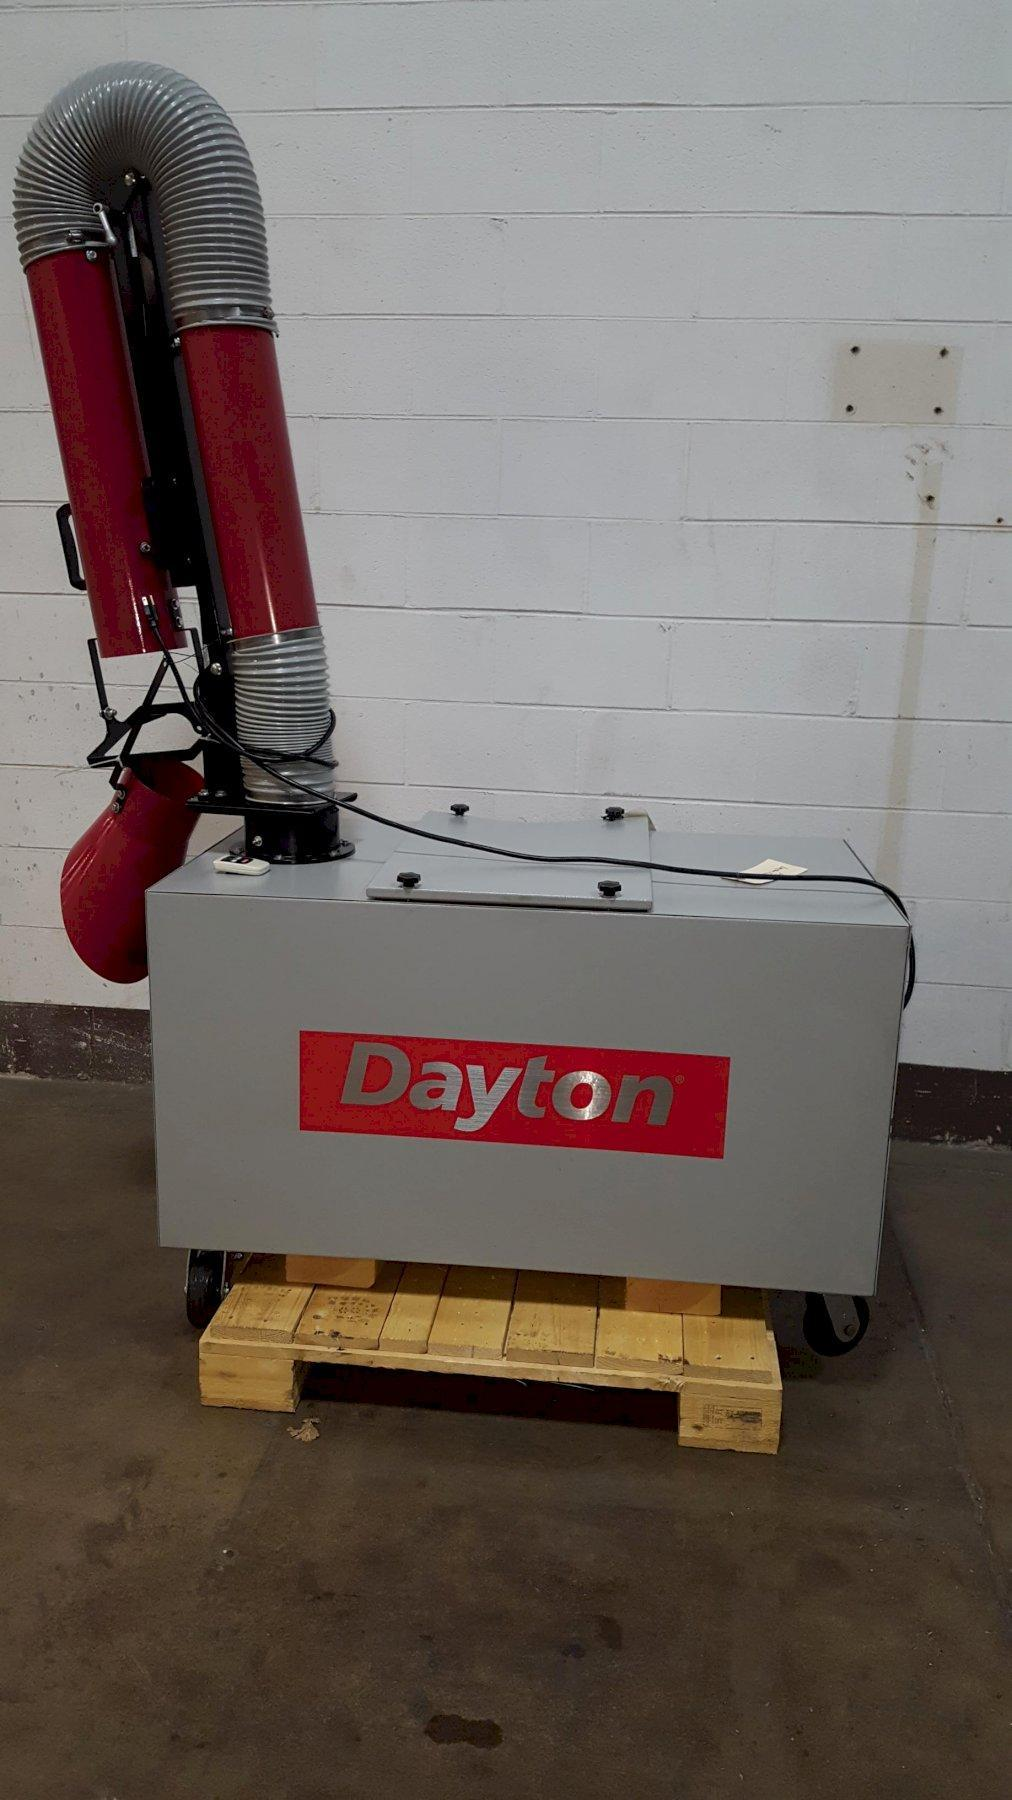 Dayton Model 2HNT3A Industrial Air Cleaner/Welding Fume Extractor